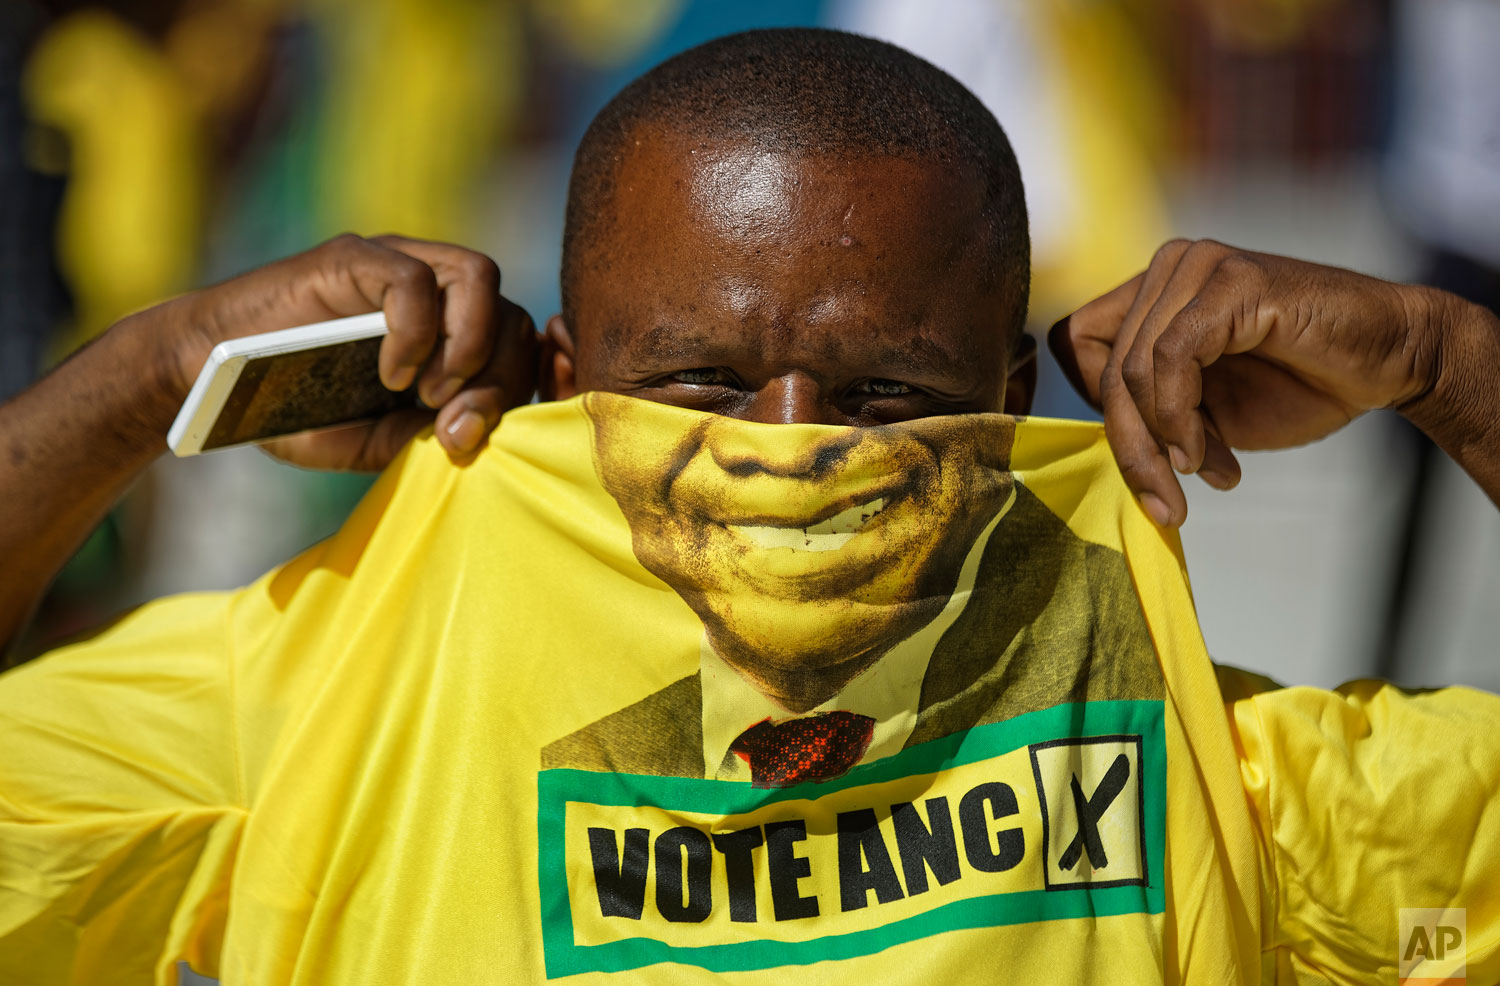 A supporter of the ruling African National Congress (ANC) holds up a t-shirt of President Cyril Ramaphosa as he attends their final election rally at Ellis Park stadium in Johannesburg, South Africa Sunday, May 5, 2019.  (AP Photo/Ben Curtis)